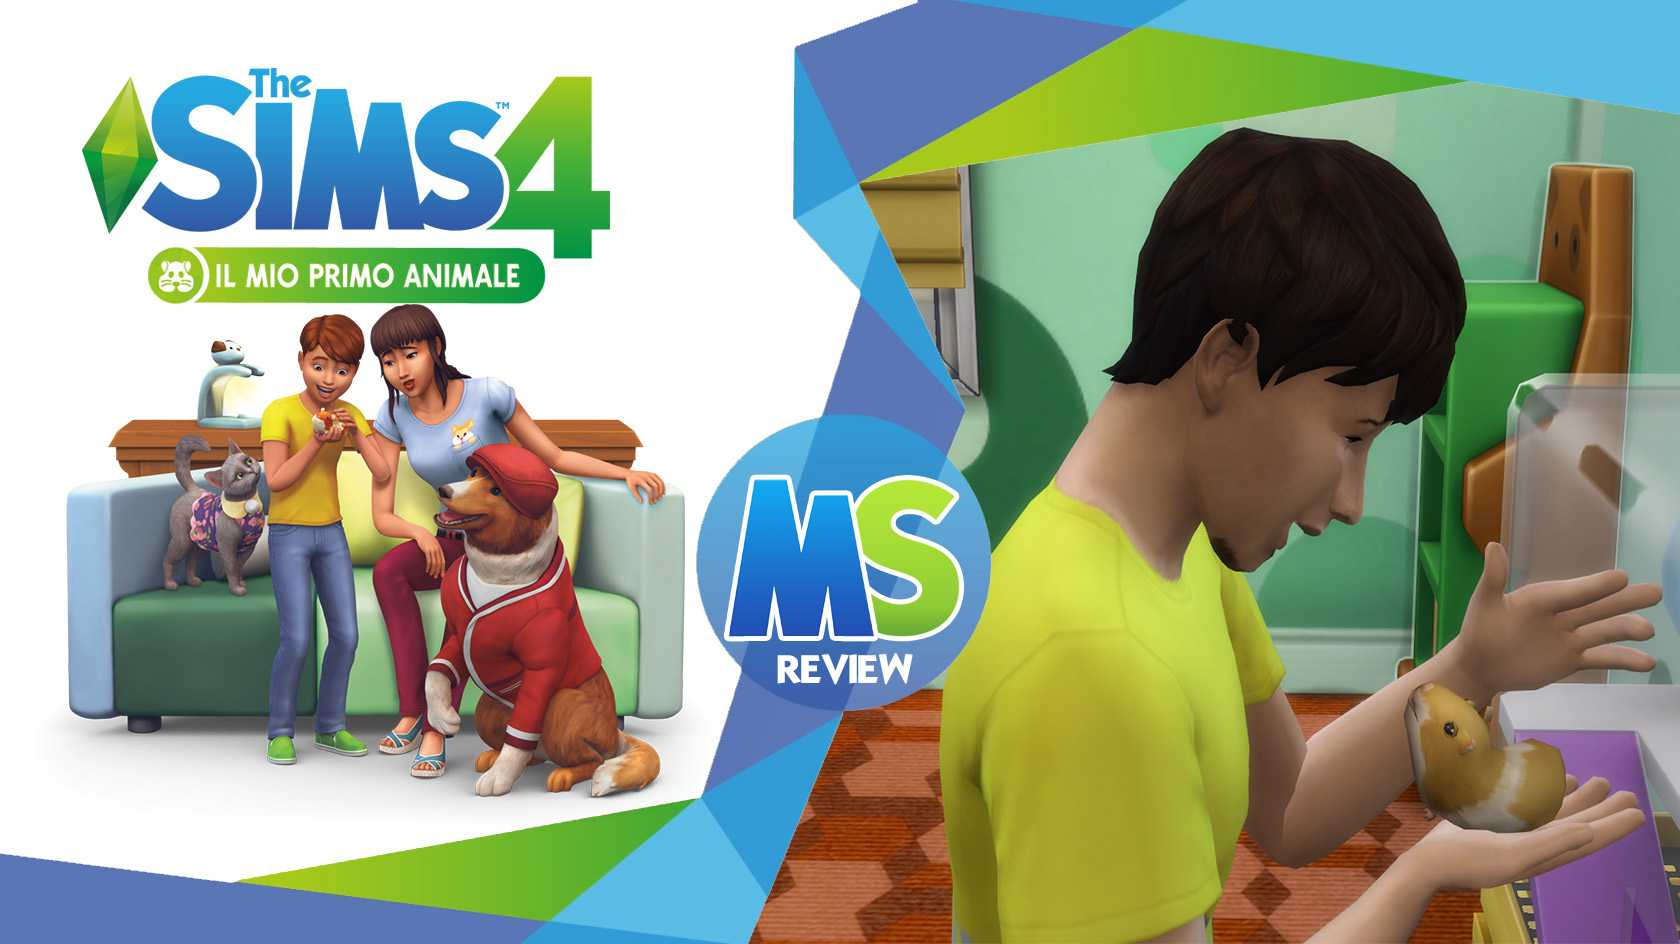 the sims 4 il mio primo animale review logo